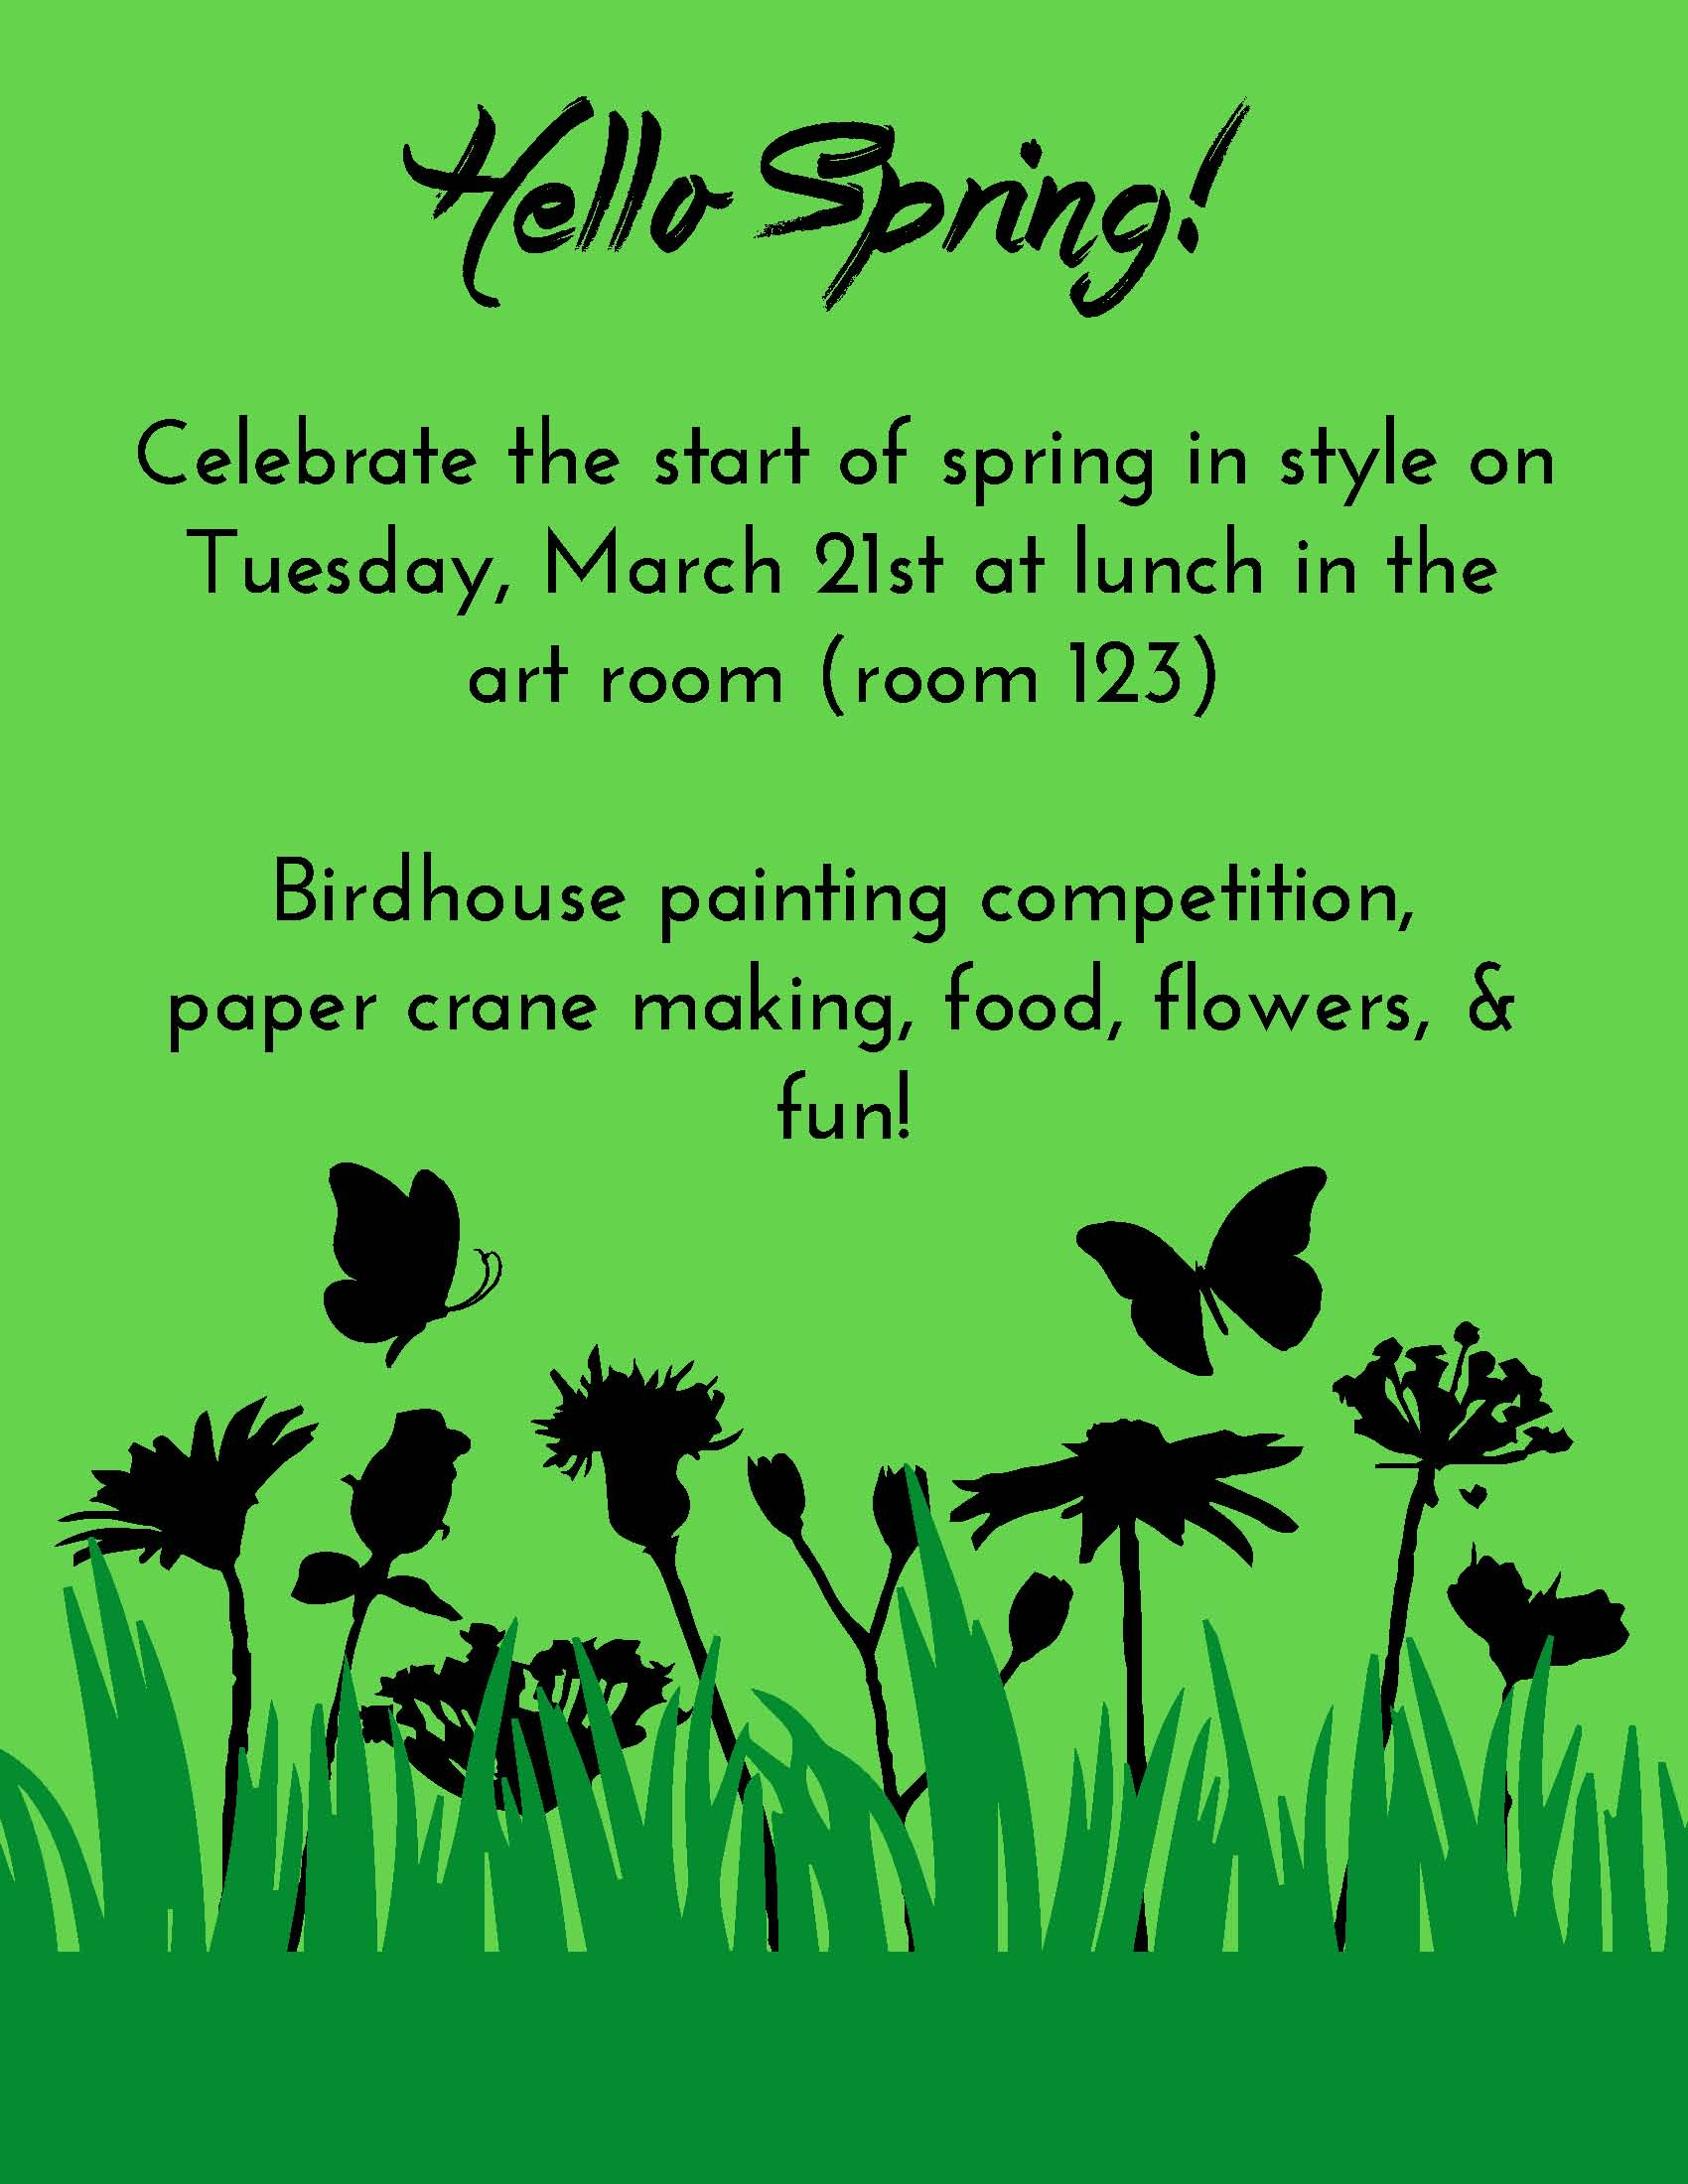 Celebrate the start of spring in style on Tuesday, March 21st at lunch in the art room (room 123) Birdhouse painting competition, paper crane making, food, flowers, & fun!